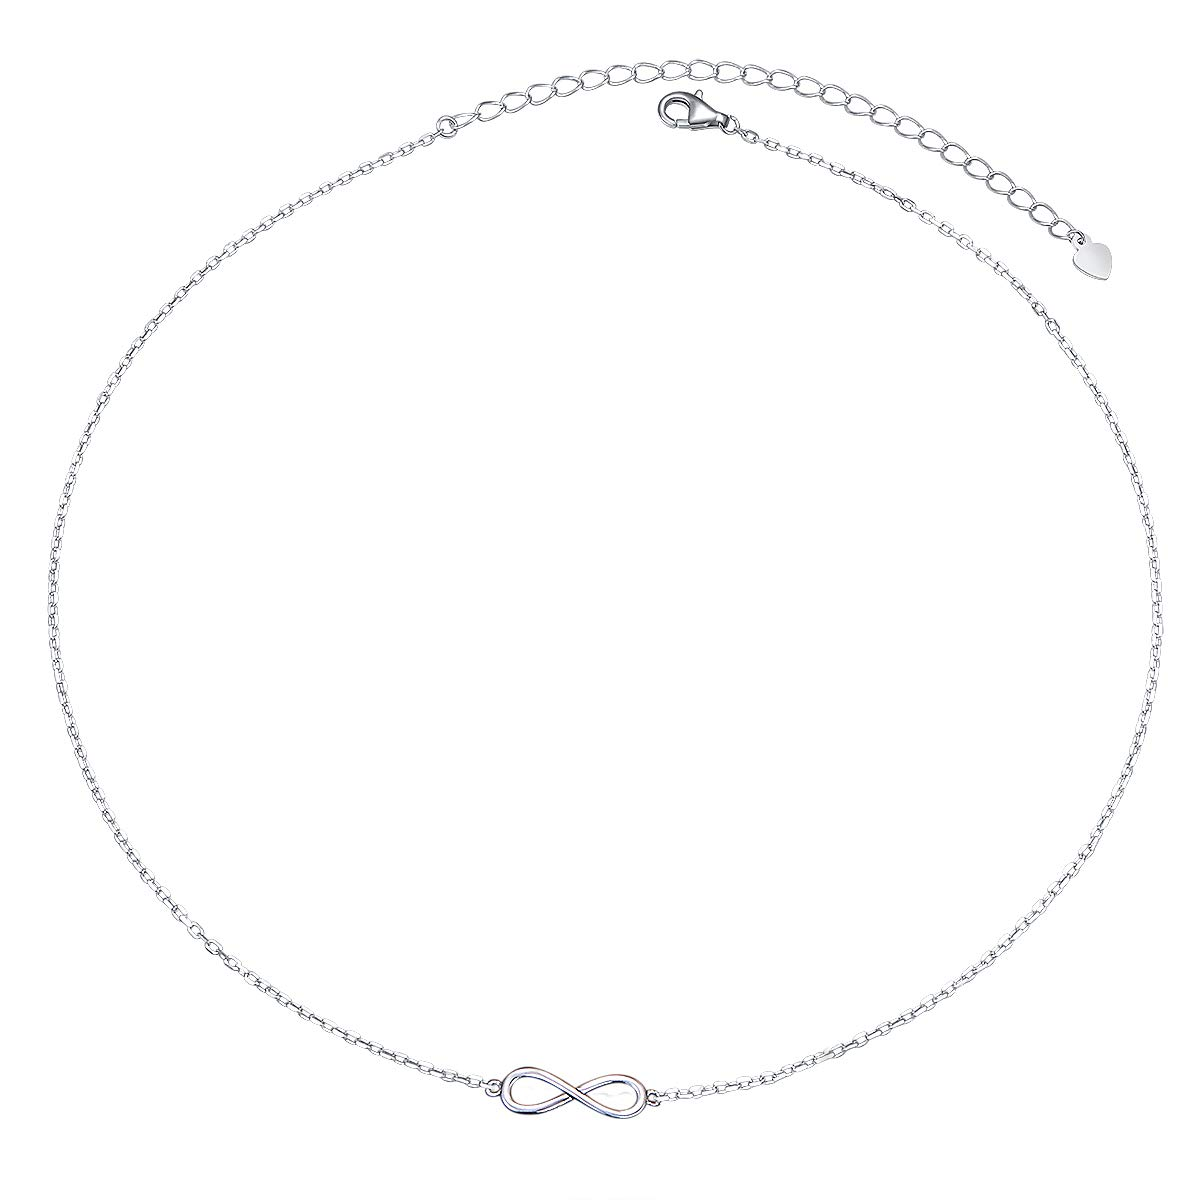 S925 Sterling Silver Choker Infinity Clavicle Dainty Short Pendant Necklace for Women Girl